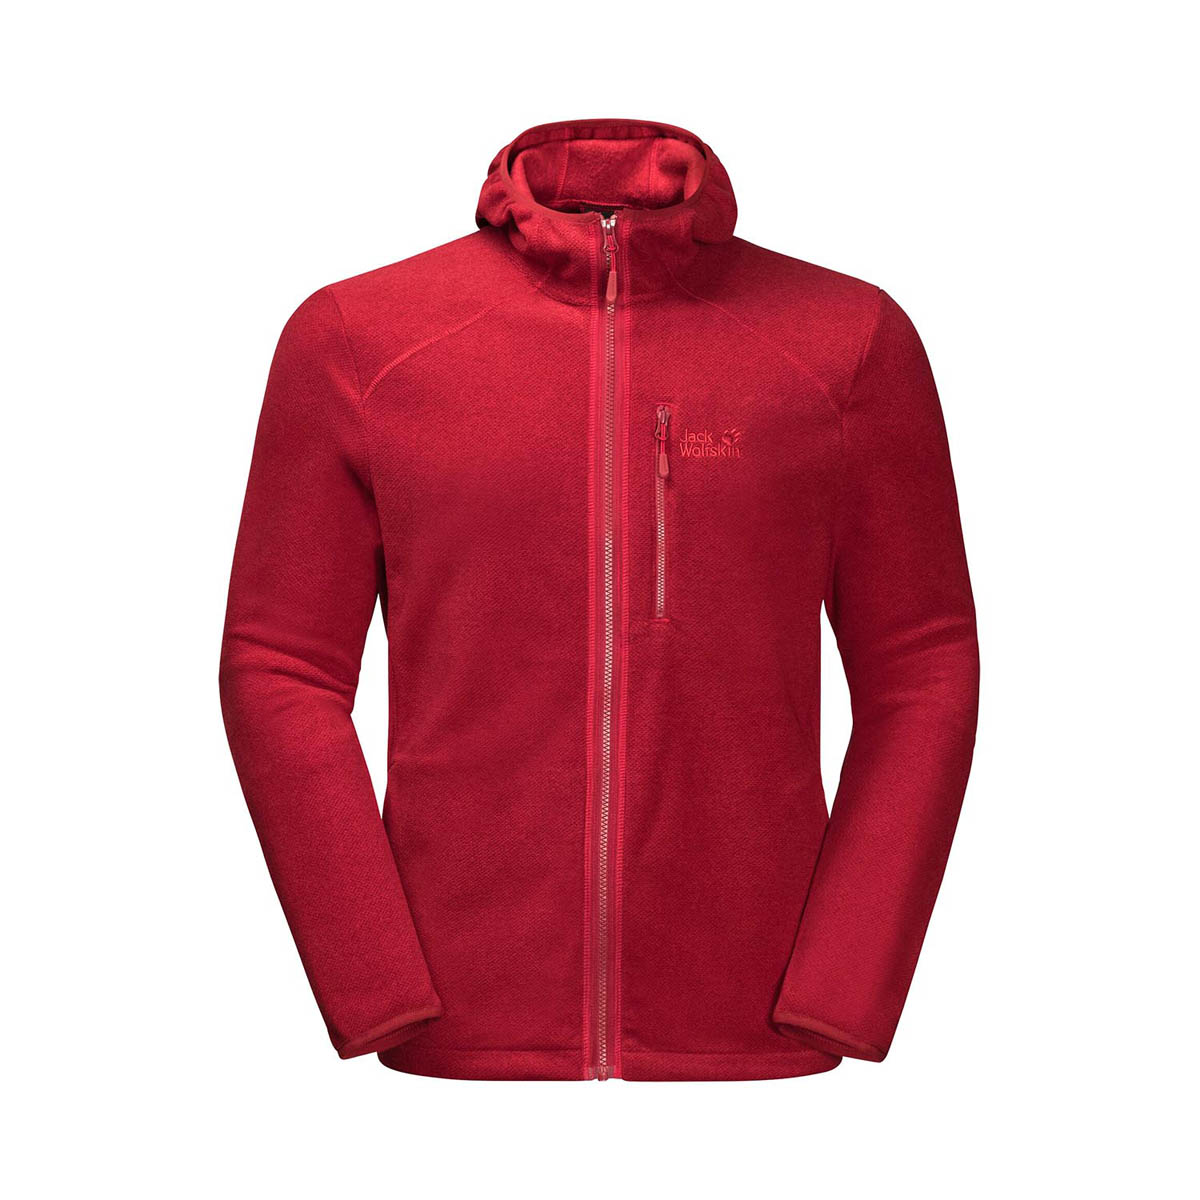 JACK WOLFSKIN - SKYWIND HOODED JACKET